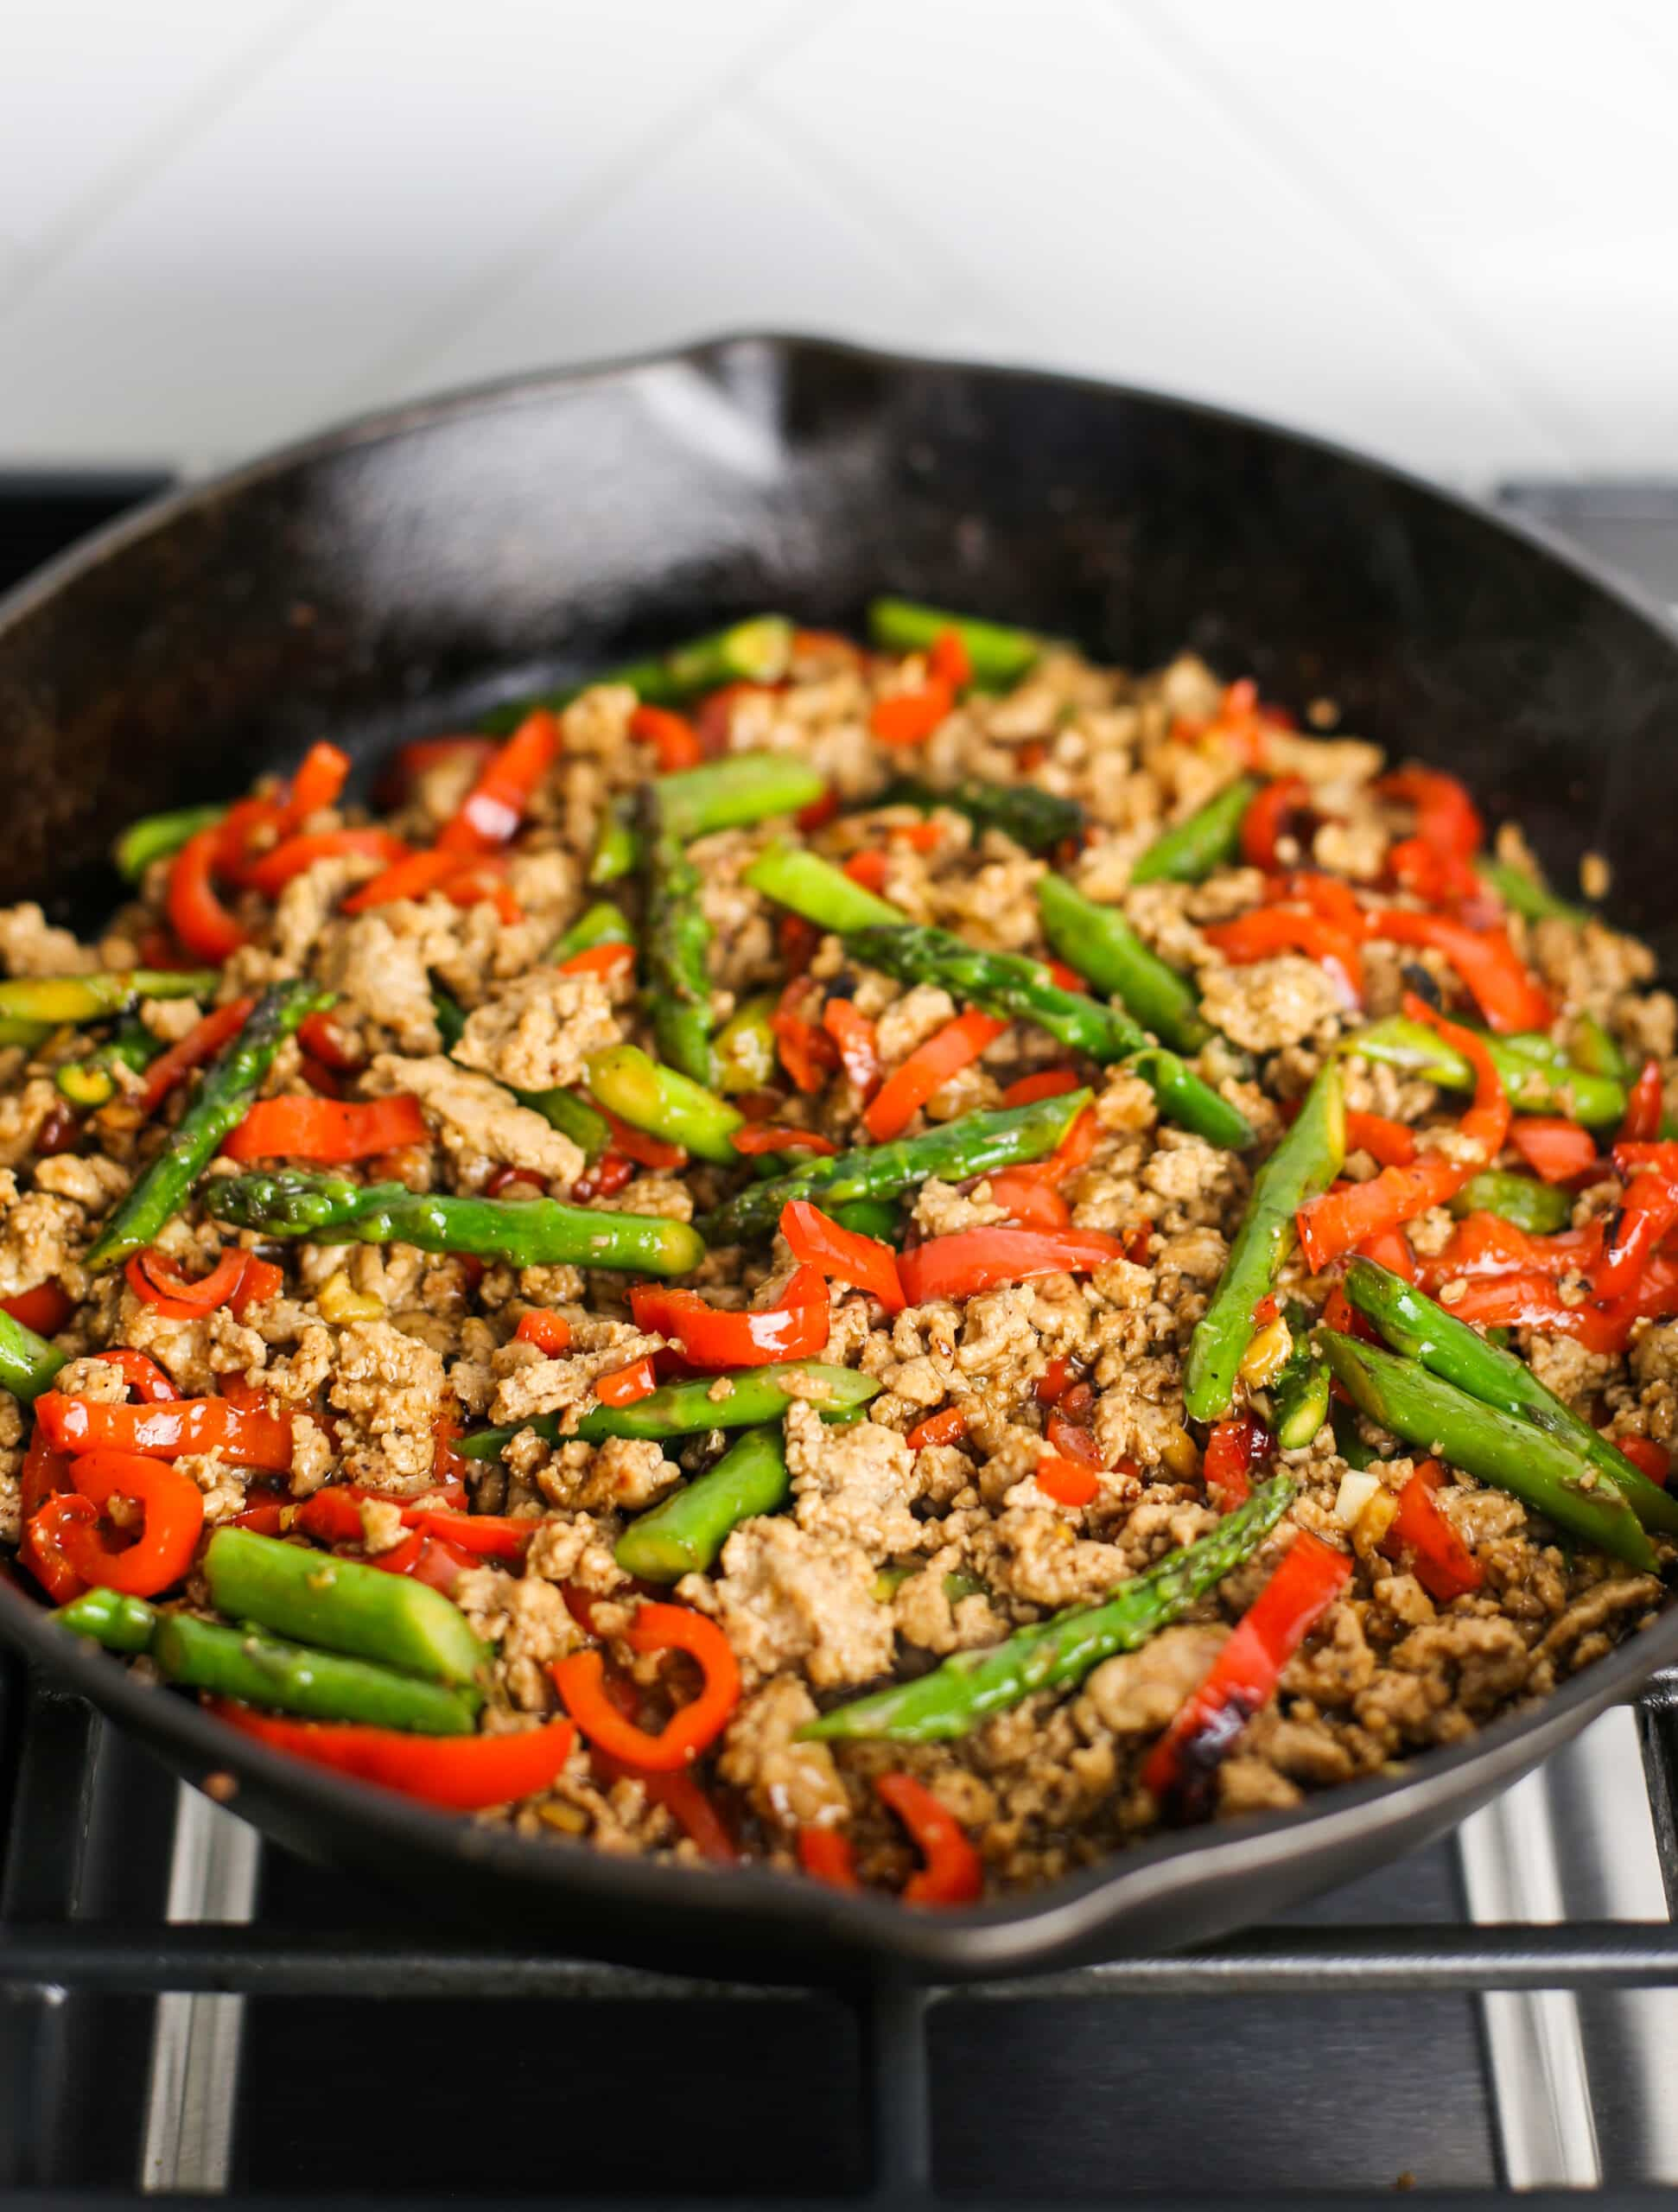 Stir-fried ground turkey, asparagus, and bell pepper in a cast iron skillet.